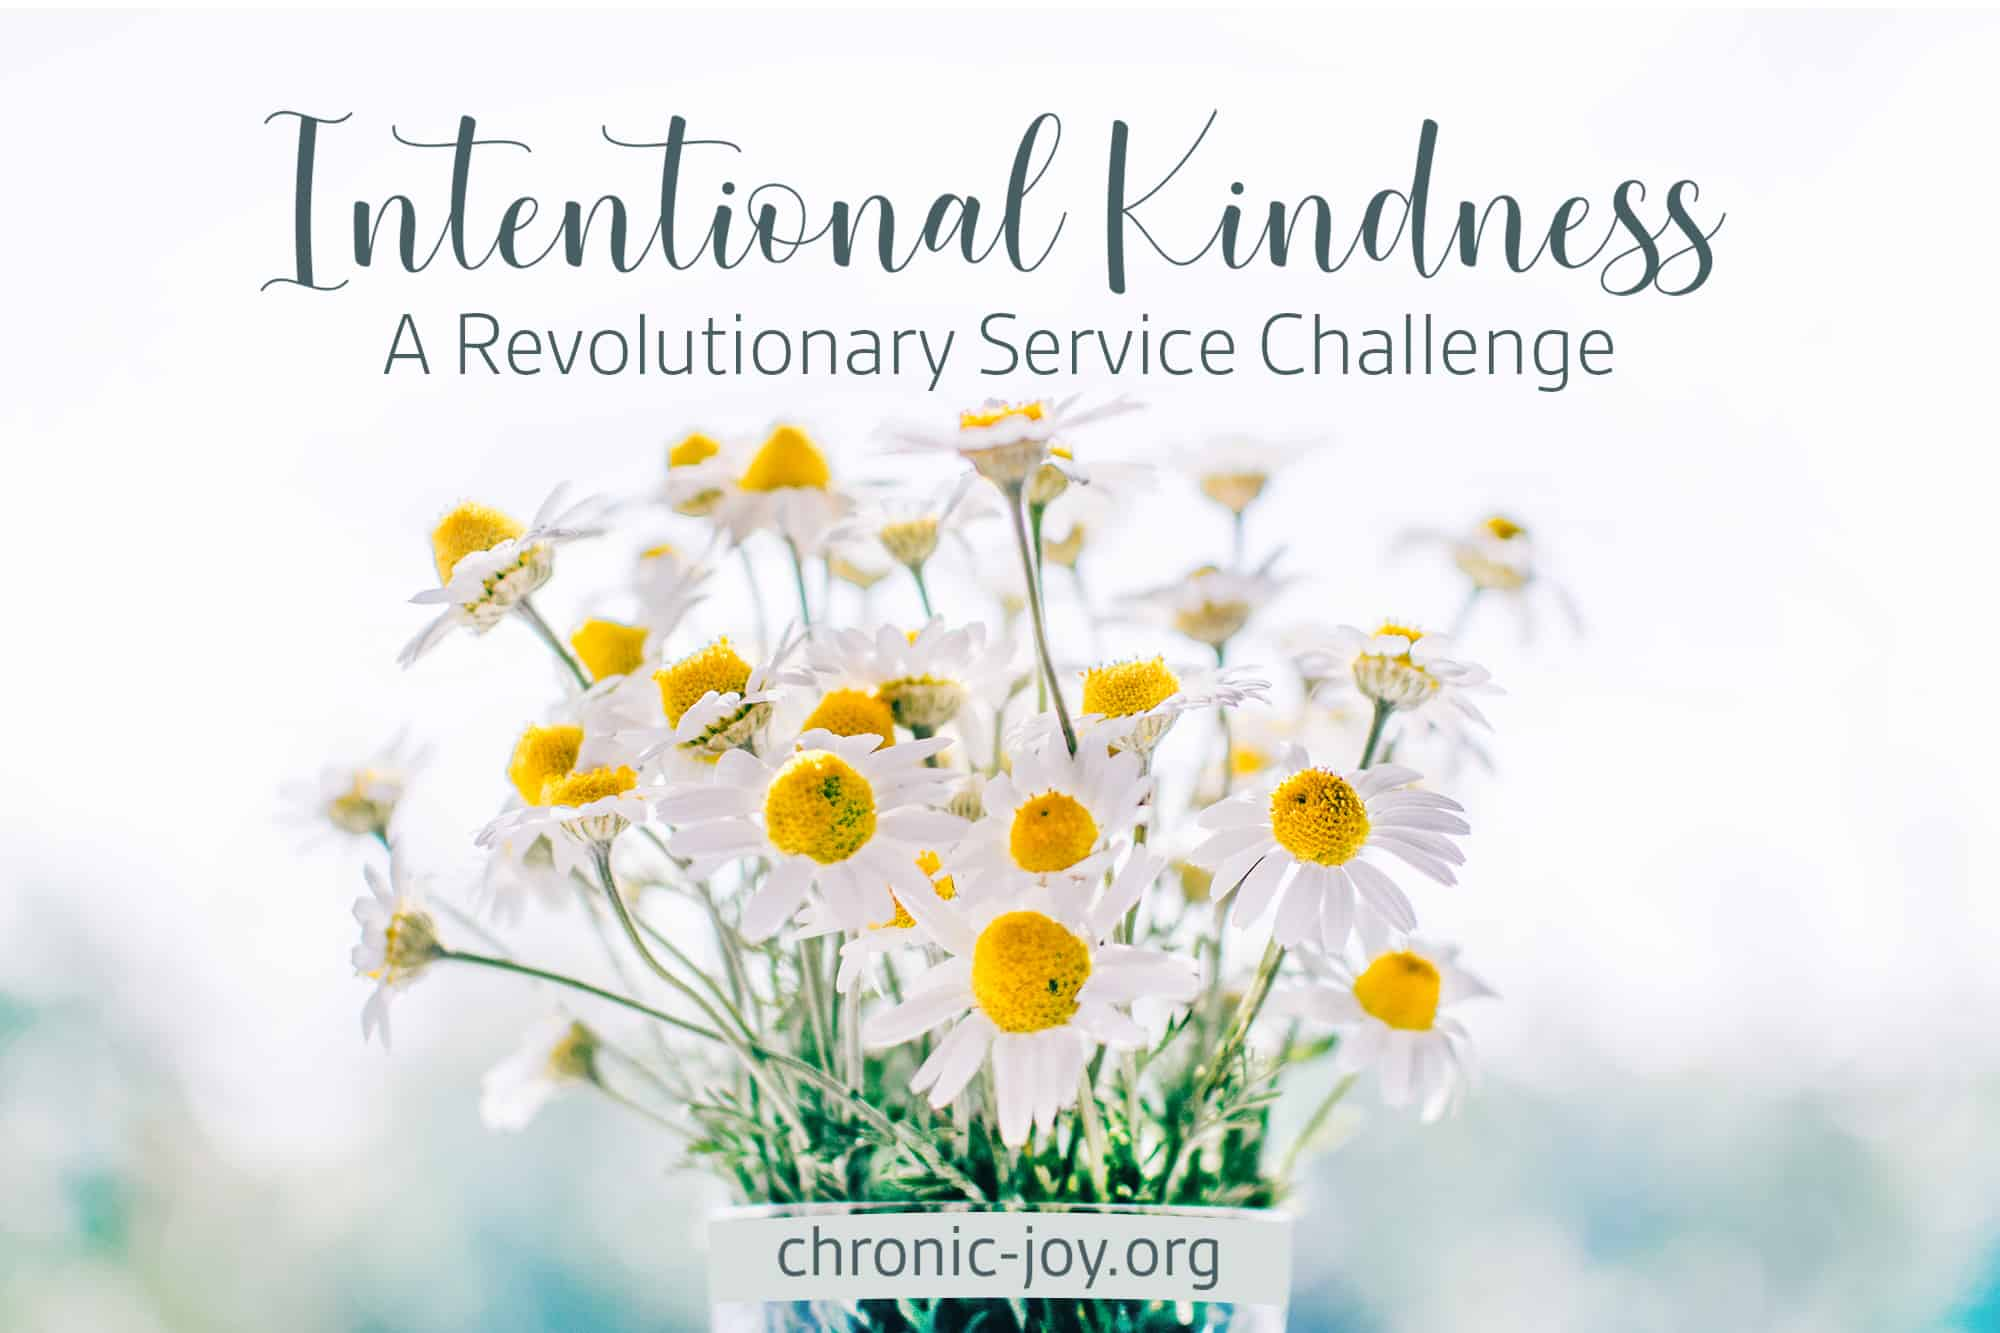 INTENTIONAL KINDNESS, A REVOLUTIONARY SERVICE CHALLENGE